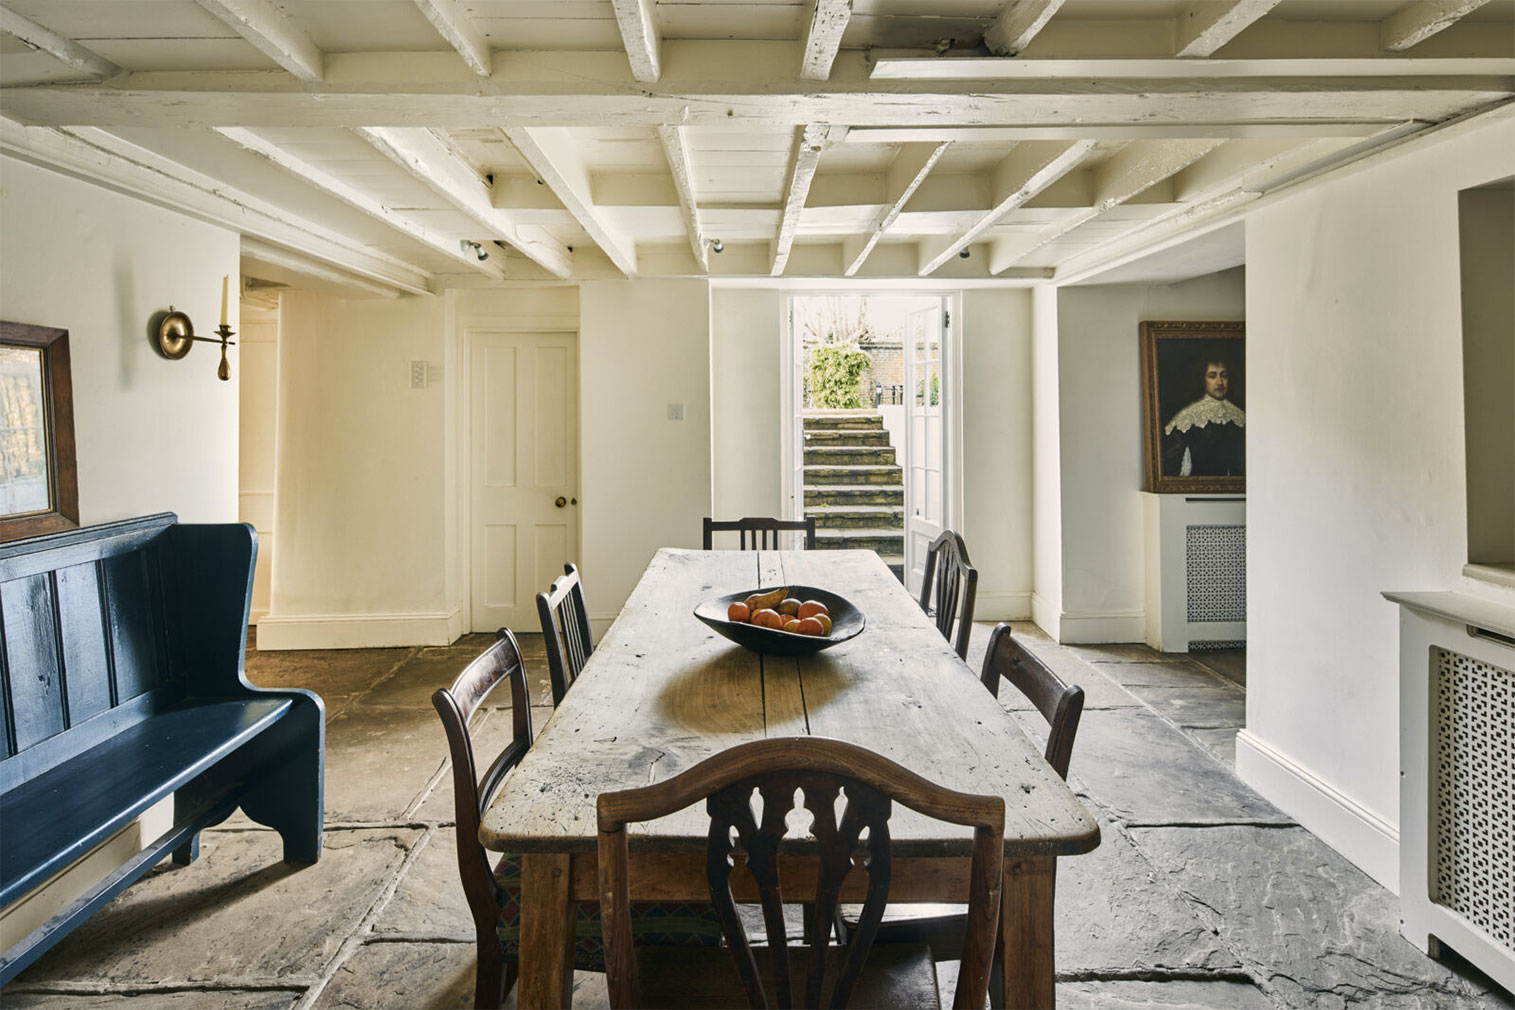 Painted rafters in the dining room showcase the low ceilings in this part of the home – previously the domain of domestic servants